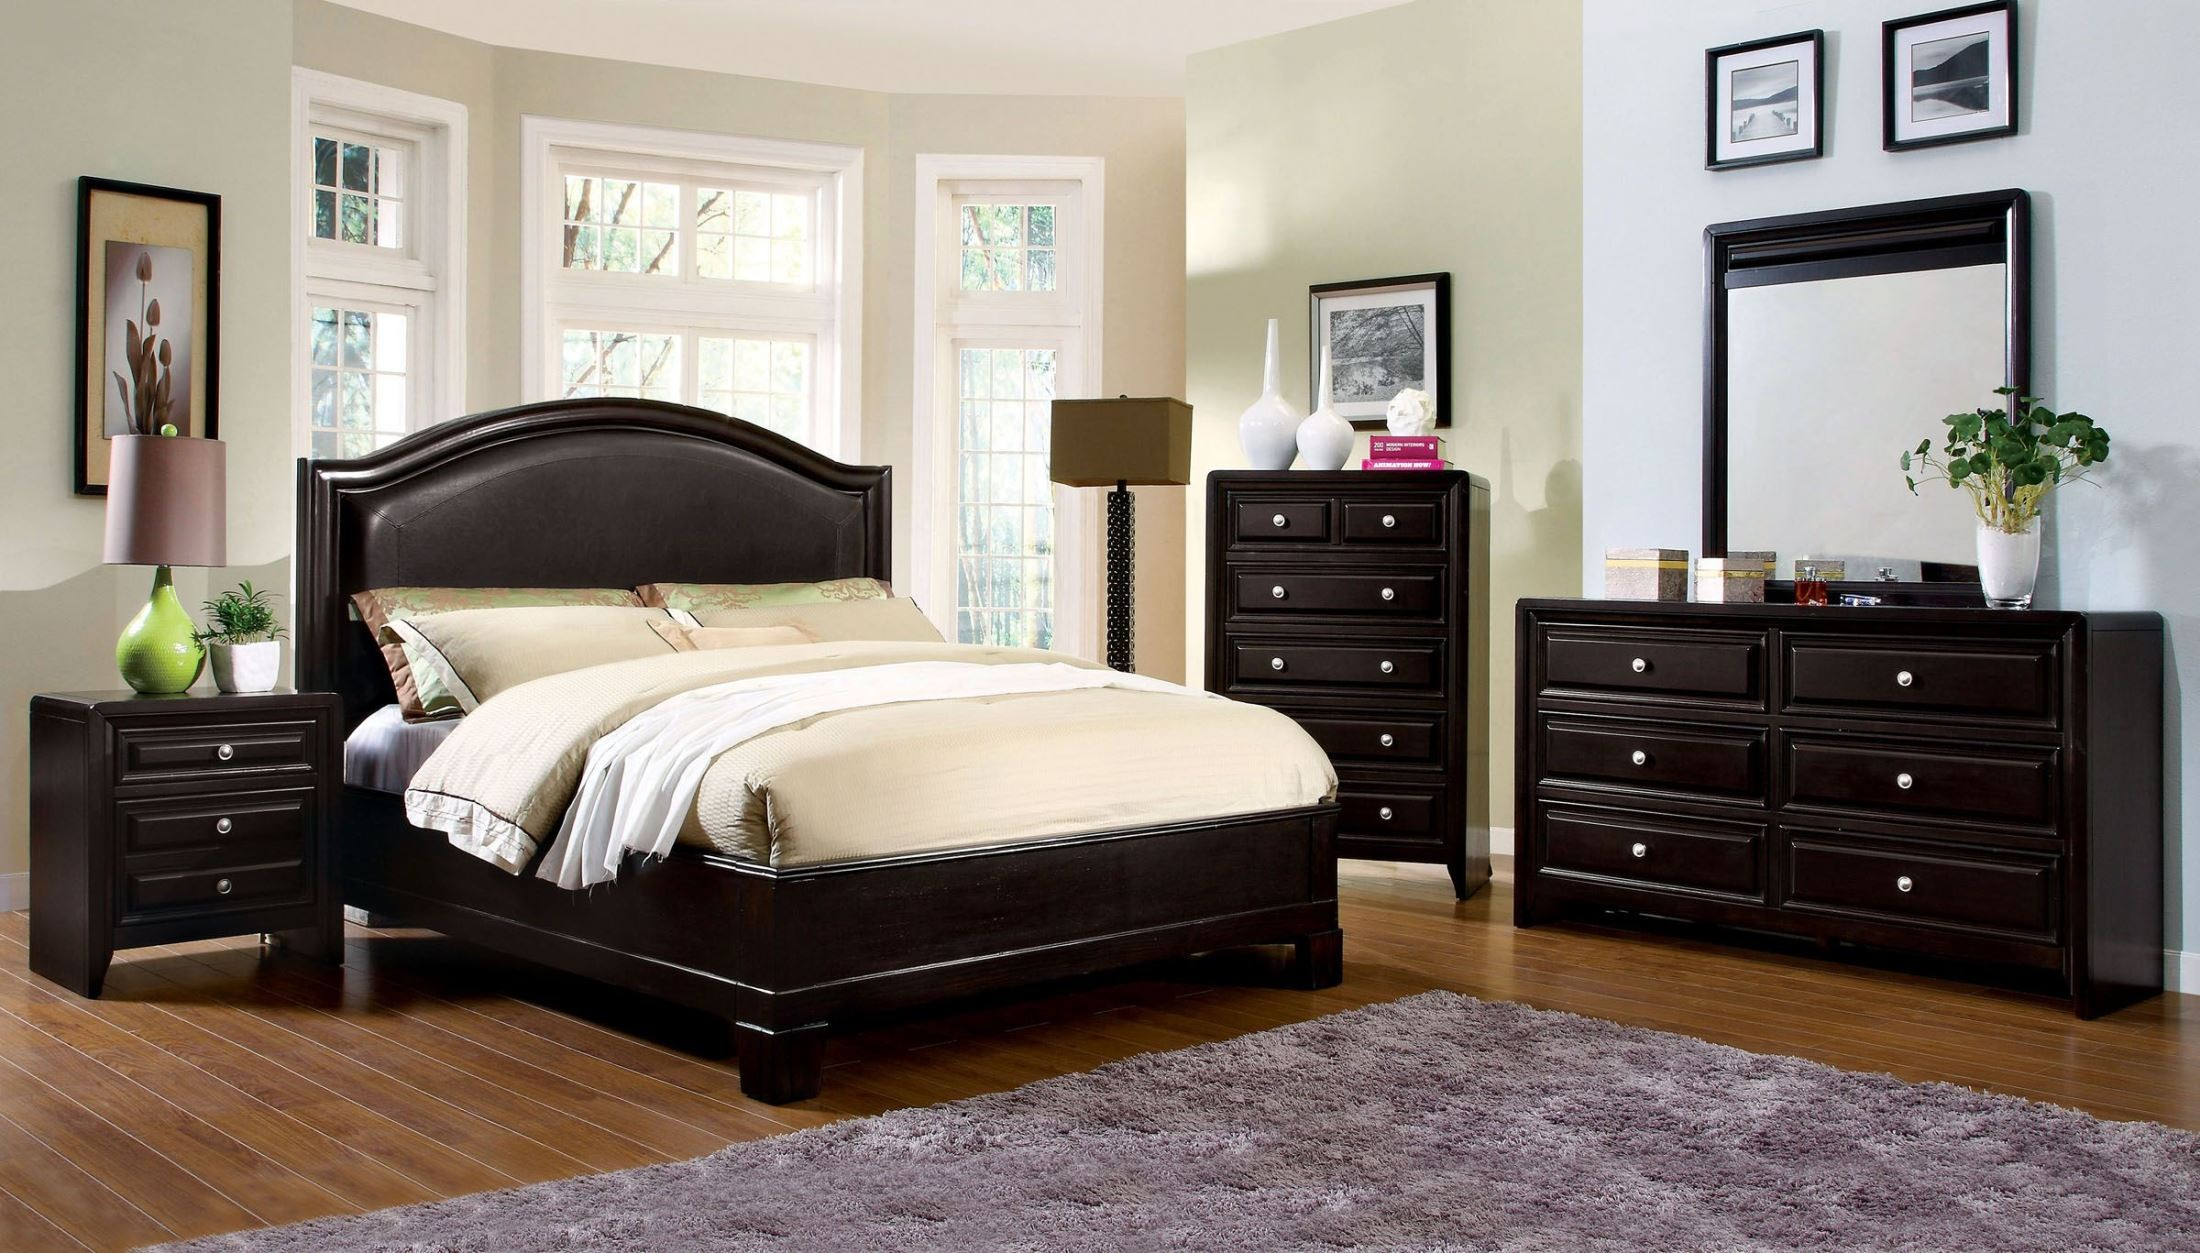 Winsor Espresso Platform Bedroom Set from Furniture of America CM7058Q BED